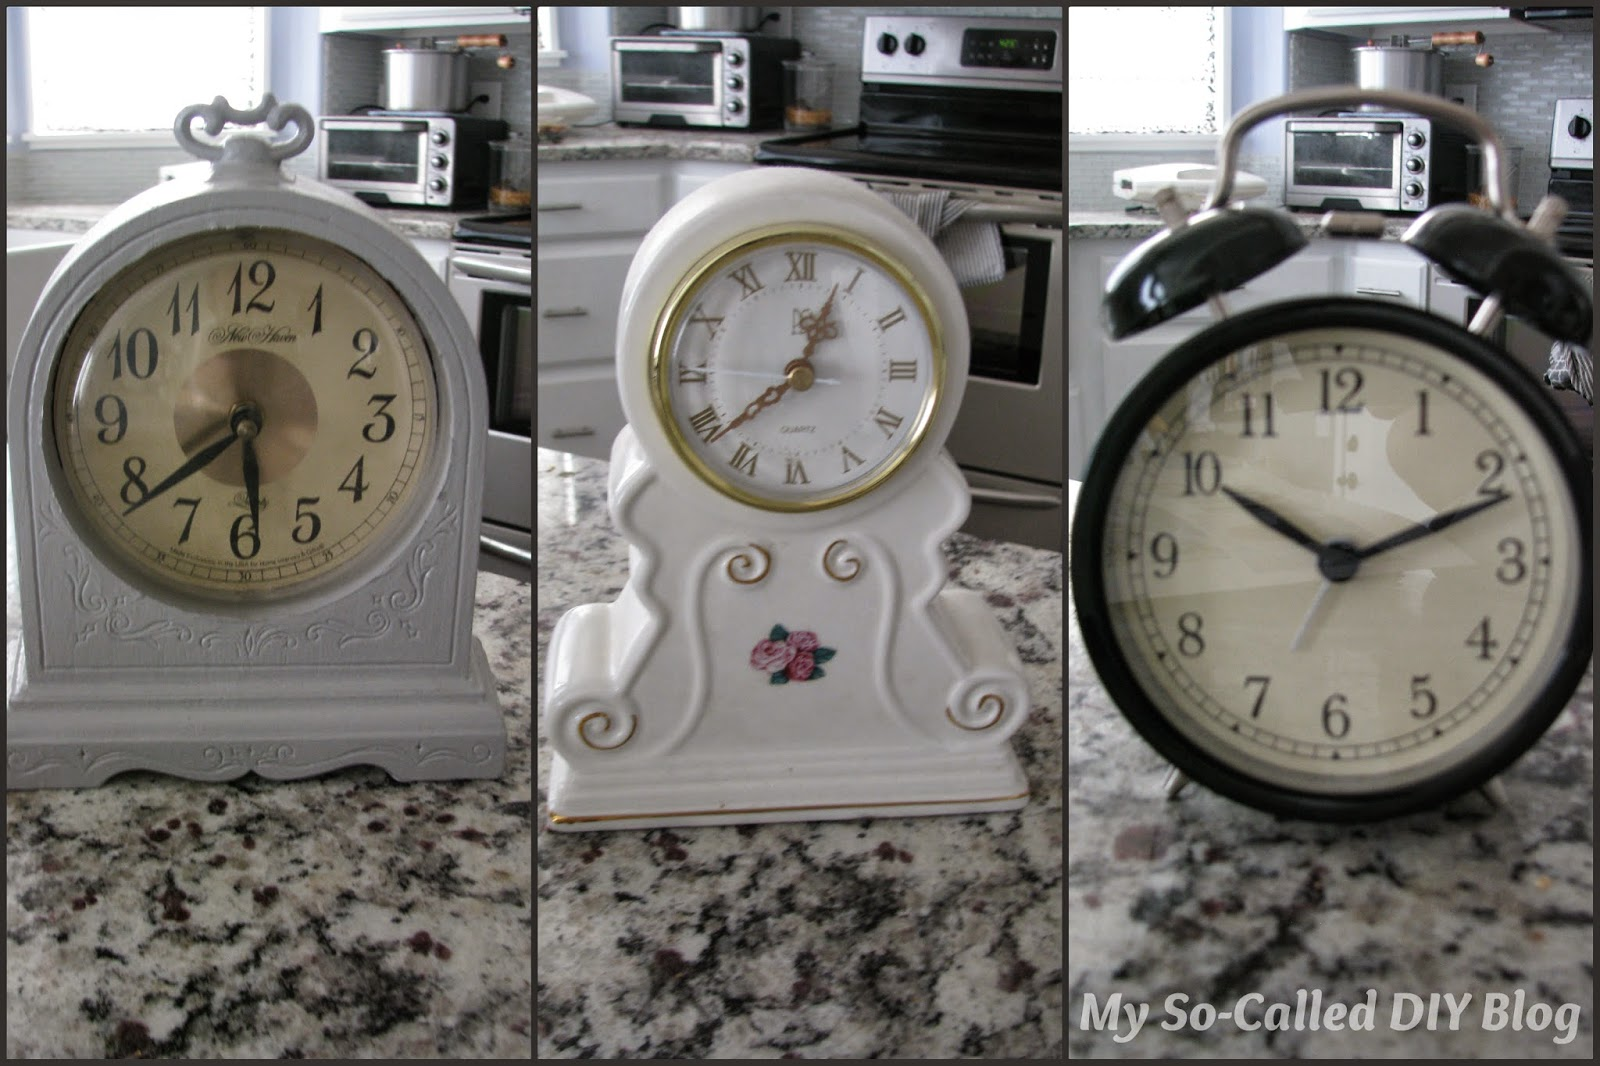 My so called diy blog using table clocks as picture frames the plastic coverings on the thrift store clocks were cloudy and scratched a bit so i took them off and used them as templates to cut out my pictures and jeuxipadfo Images